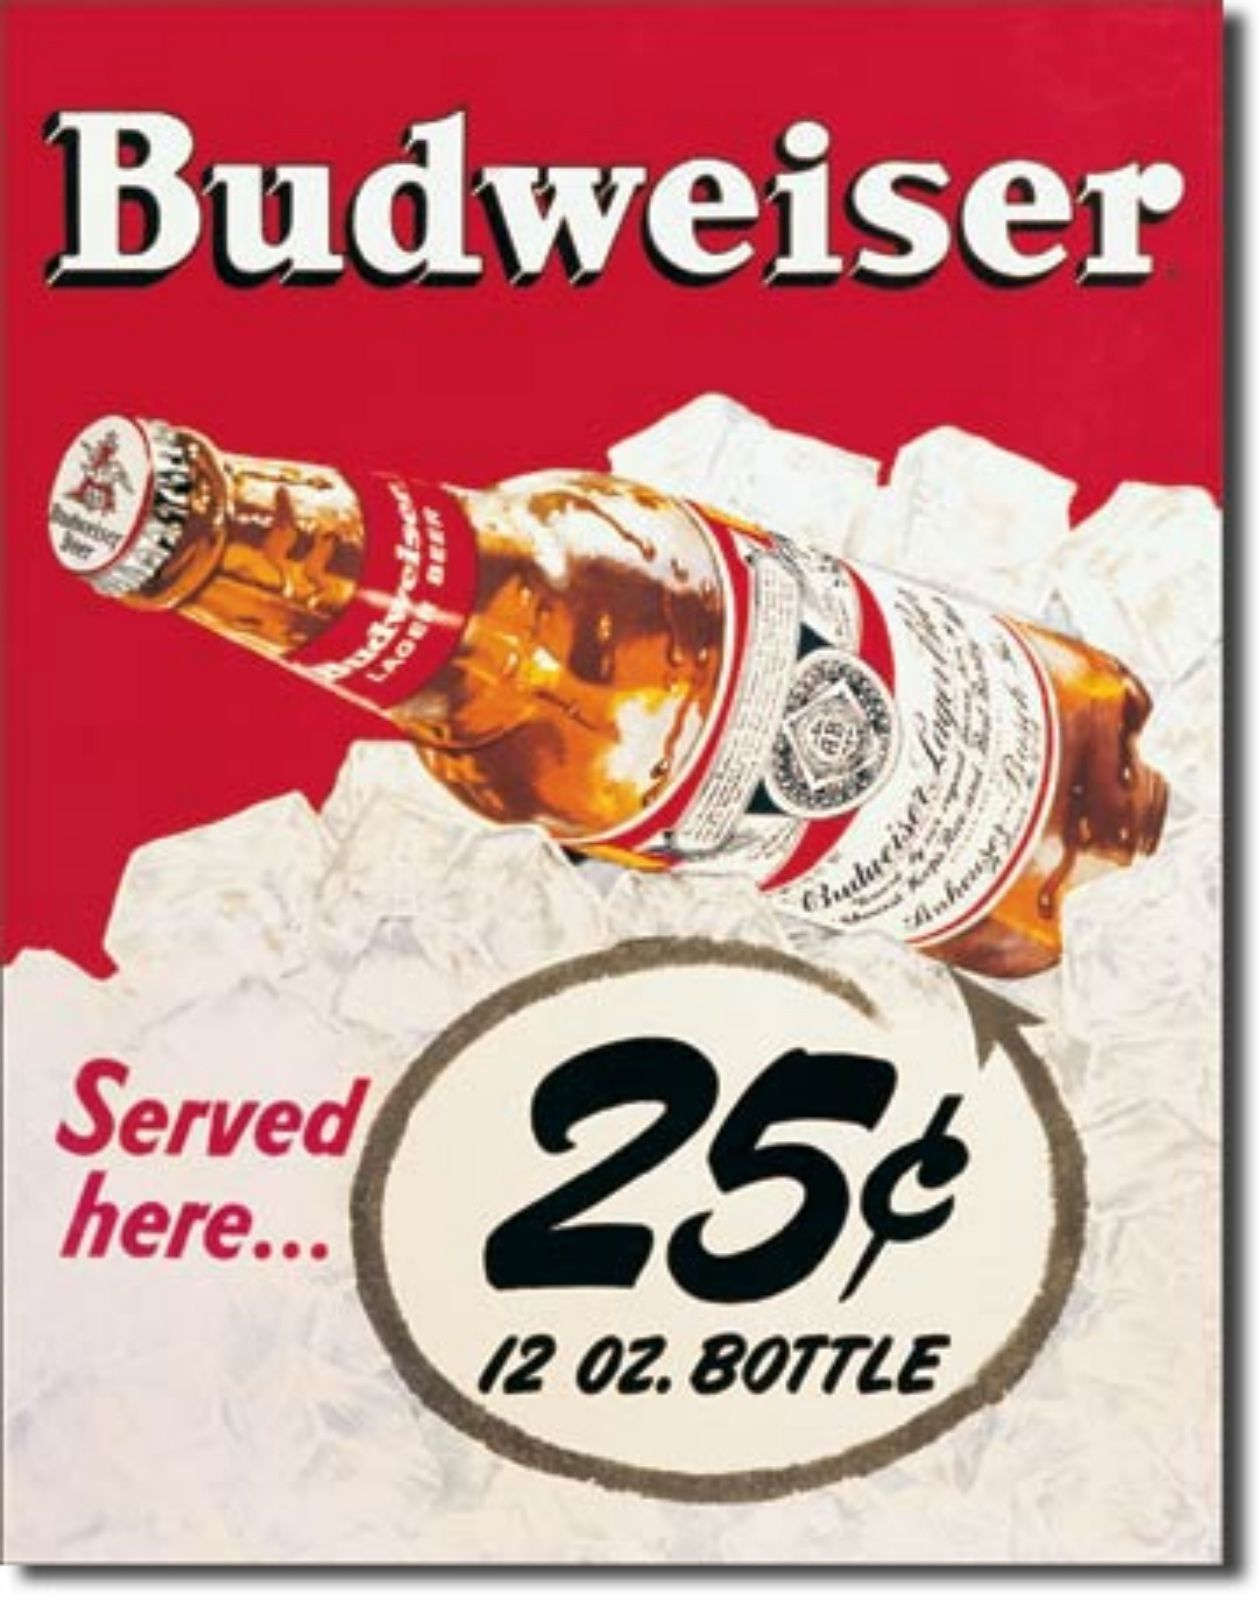 Budweiser 25 Cents 12 oz. Bottle Beer Metal Sign Tin New Vintage Style USA #981